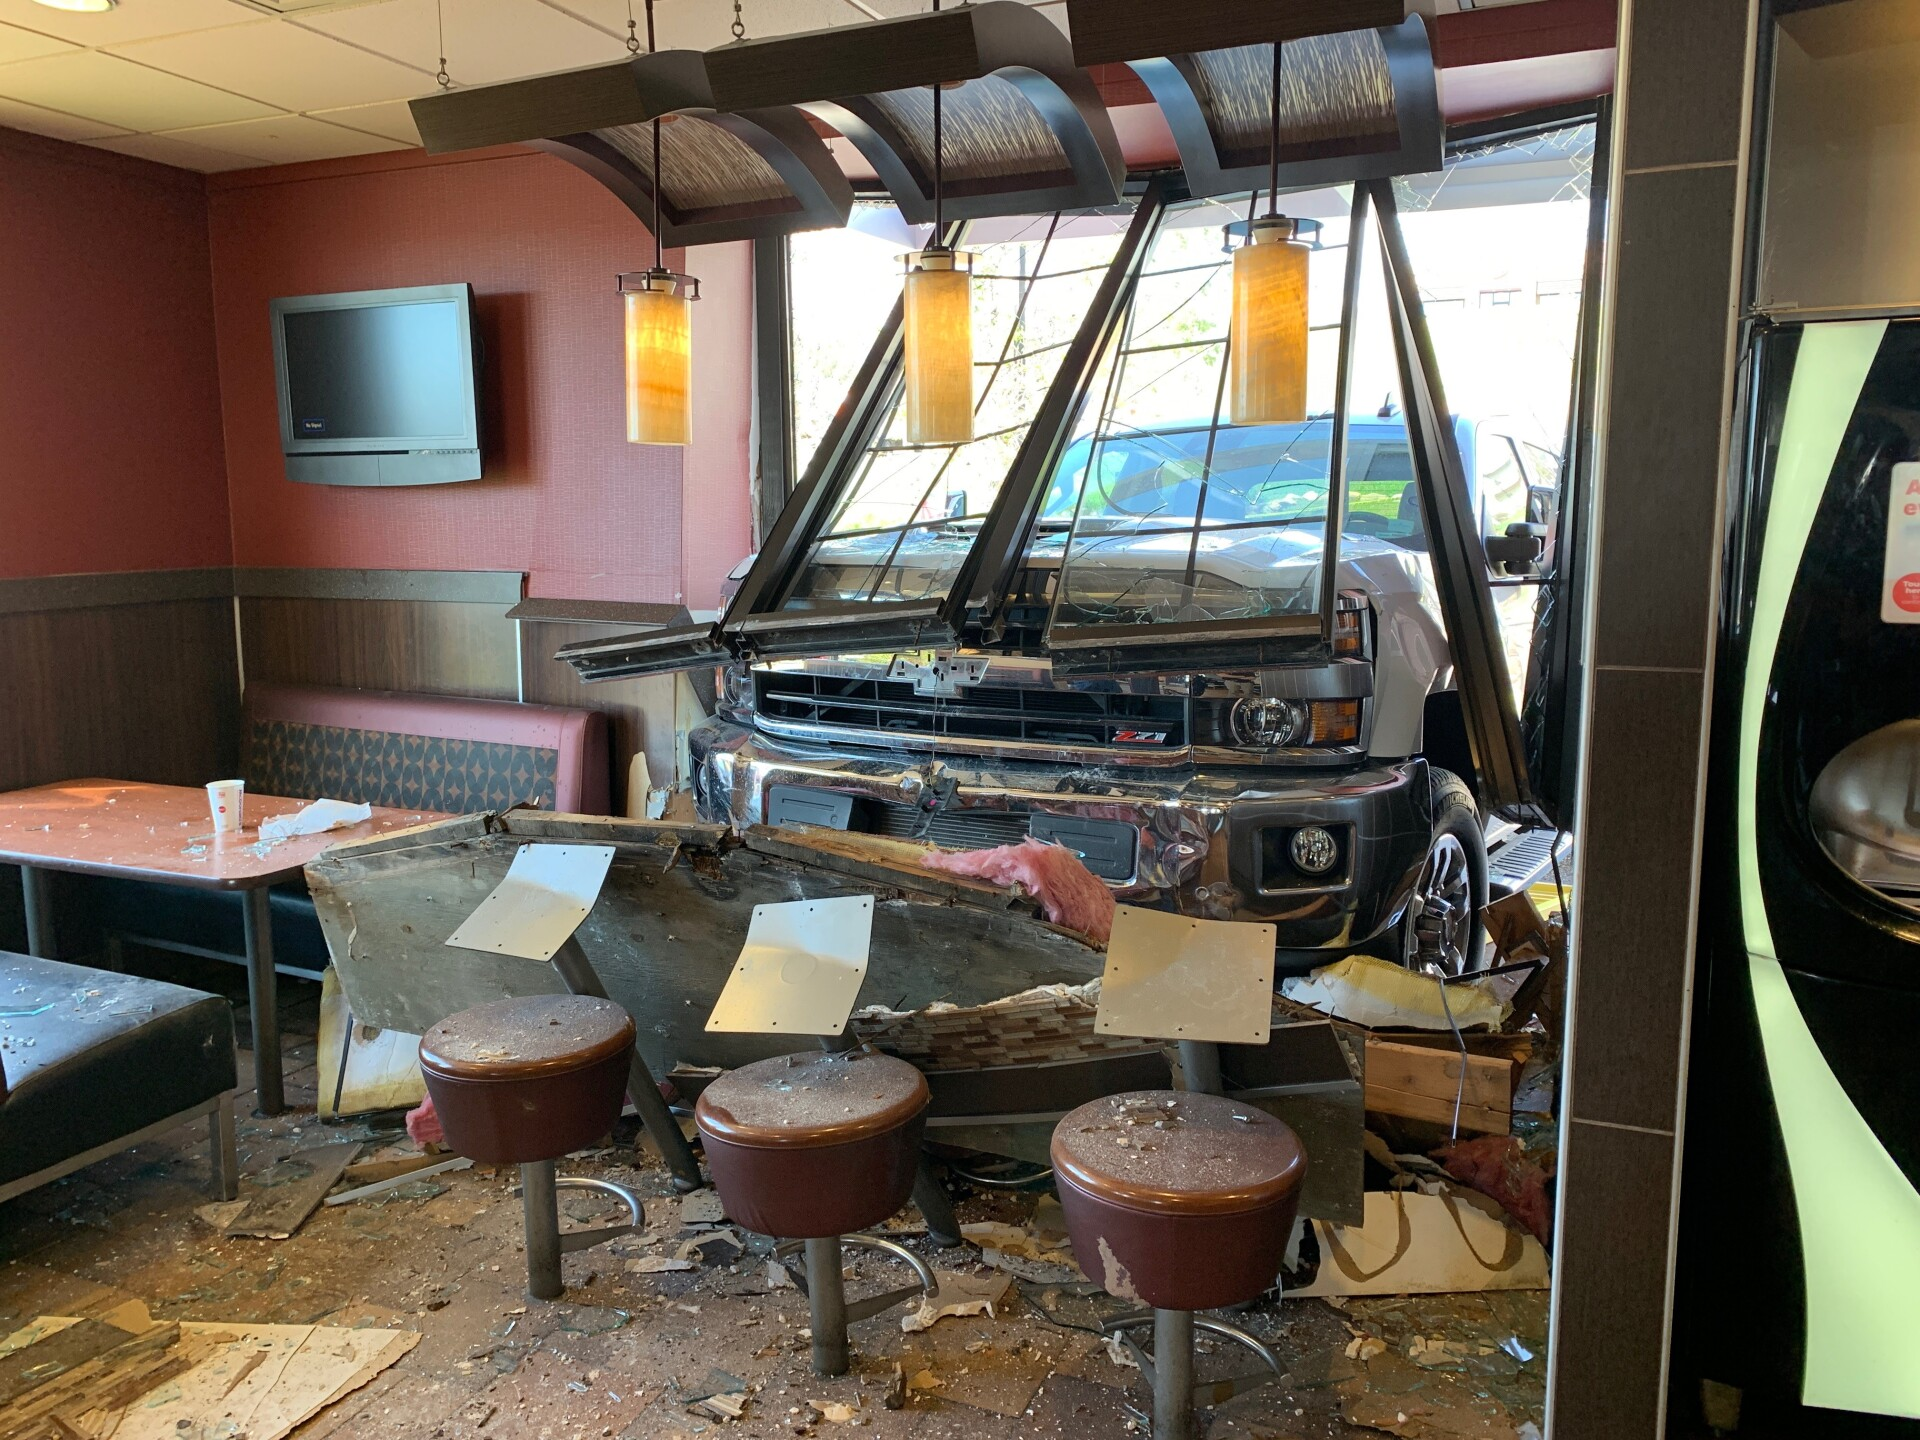 Photos: No injuries after truck smashes through window at McDonald's in Summit County